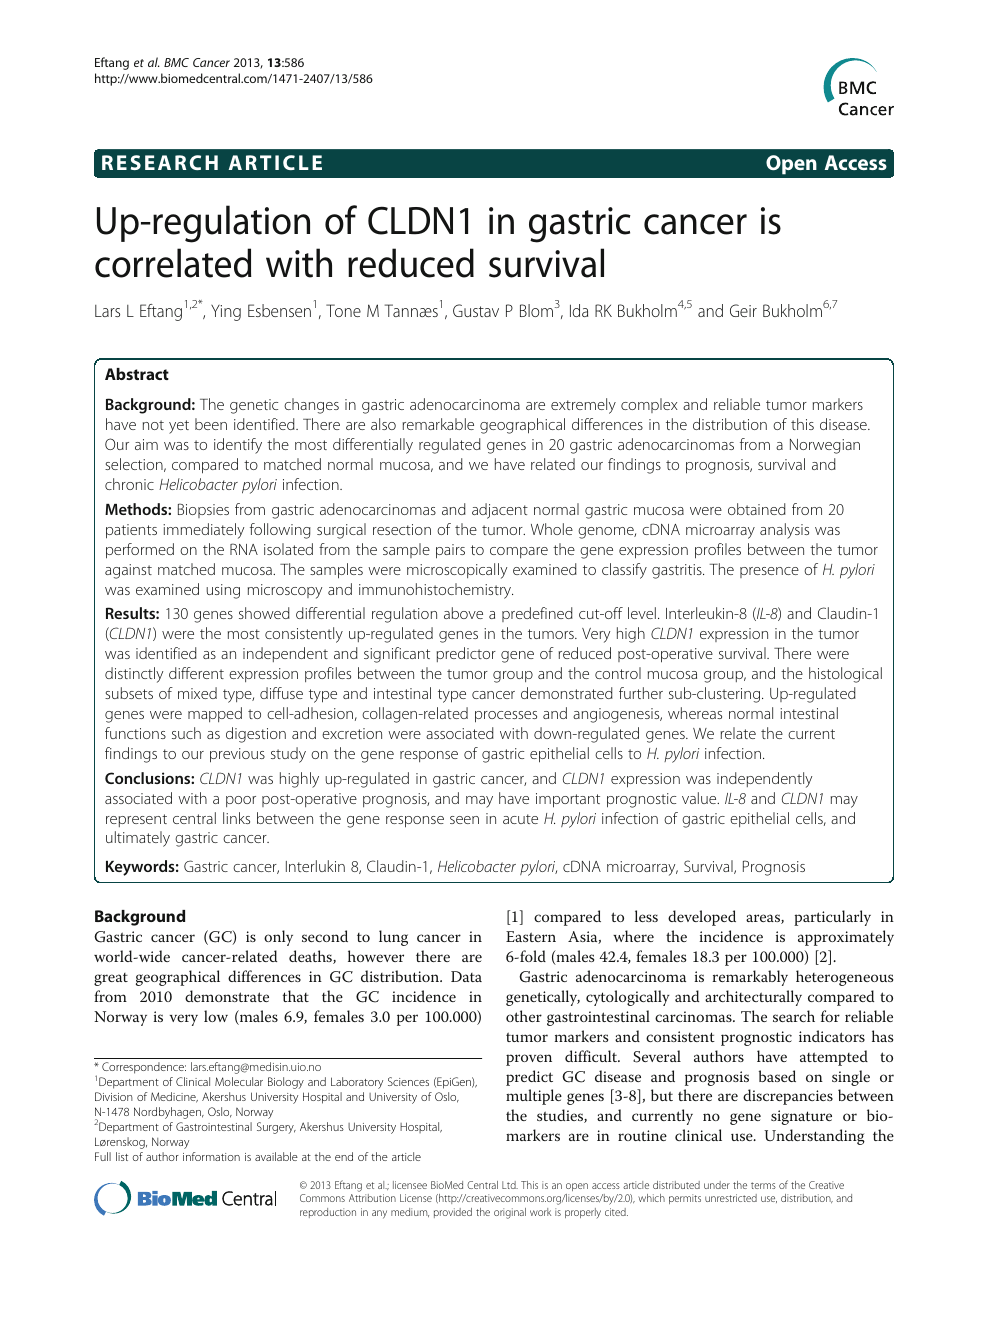 [The importance of anamnesis in the early diagnosis of gastric cancer] - Abstract - Europe PMC